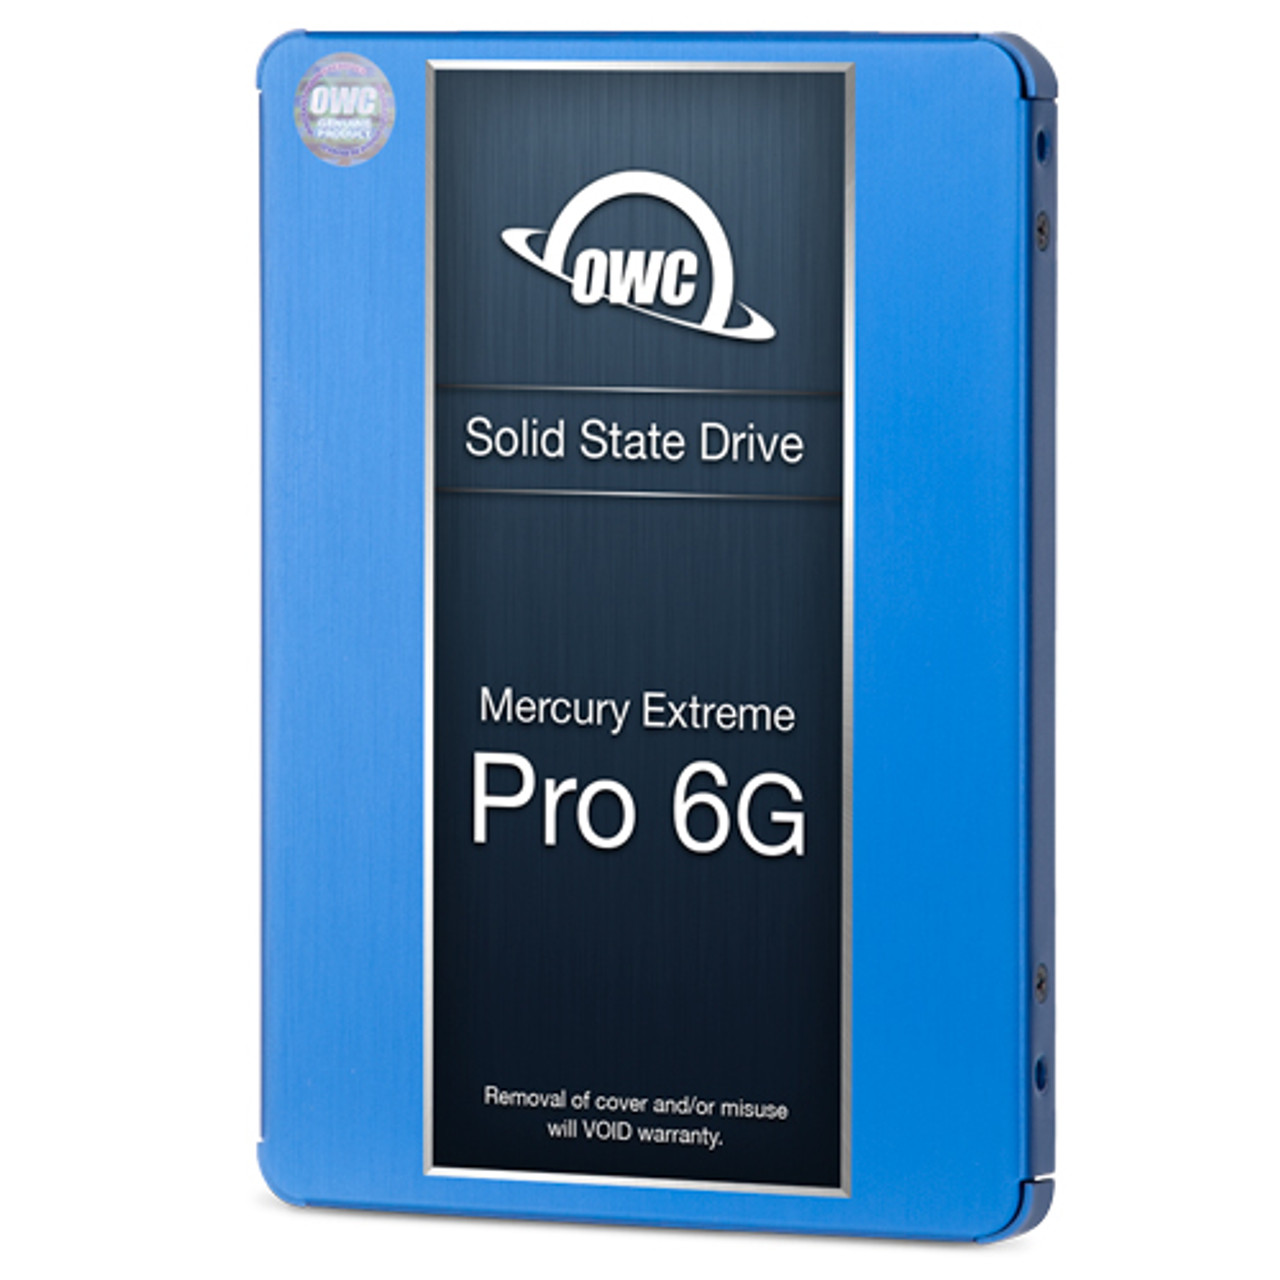 4TB OWC Mercury Extreme 6G SSD and HDD DIY Bundle Kit for all iMac Mid 2011